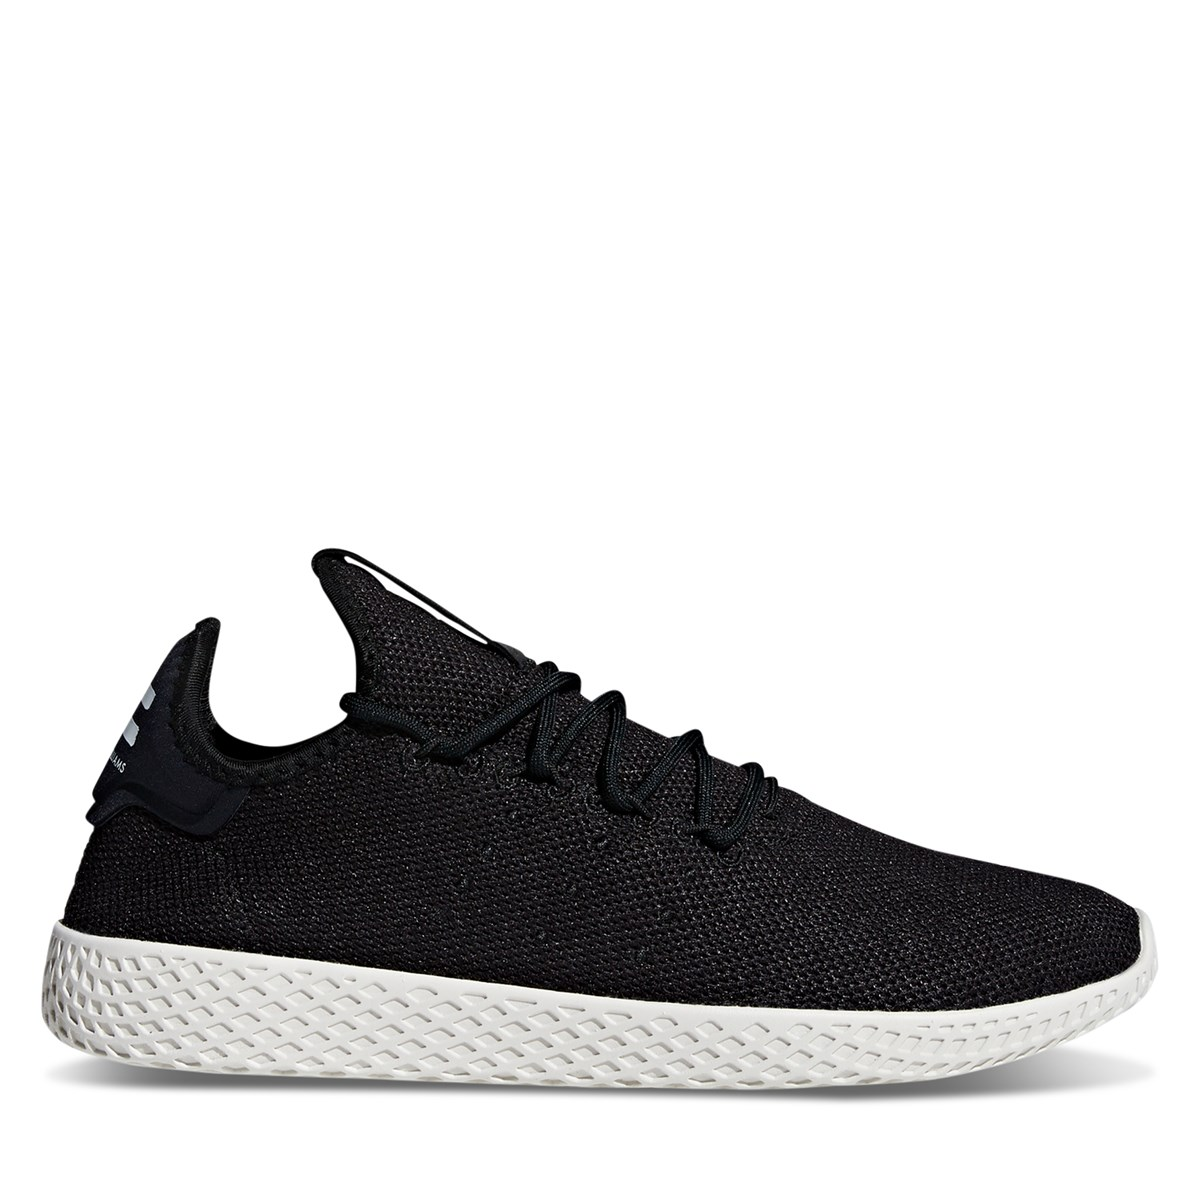 Men's Pharrell Williams Tennis Sneakers in Core Black